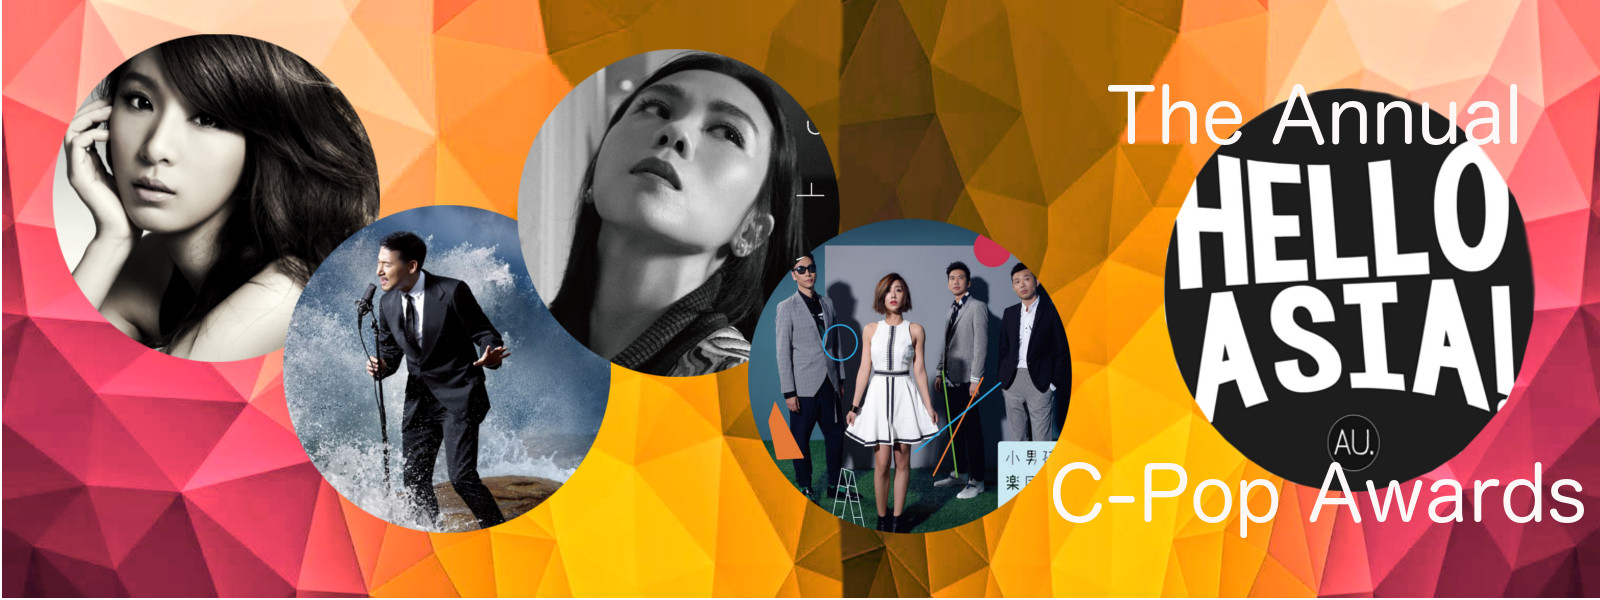 Full winners list from 2015 Hello Asia C-Pop Awards